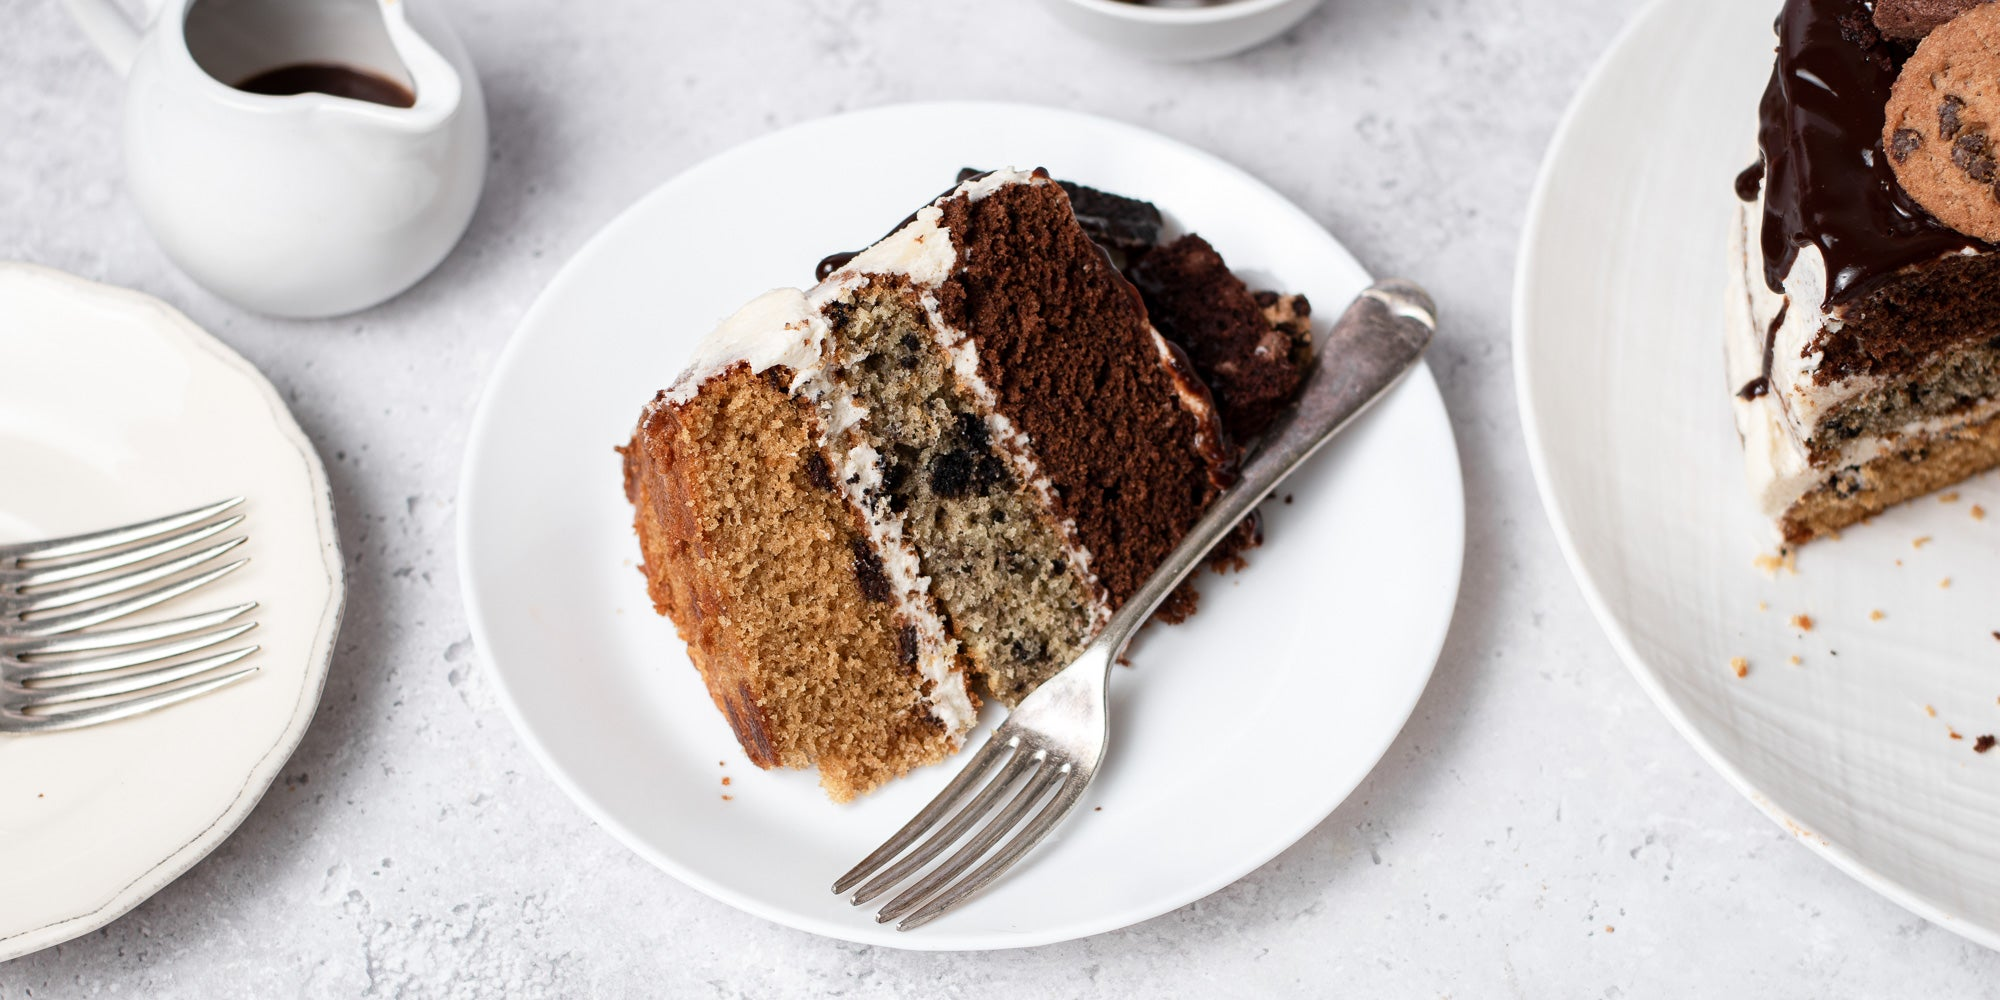 Cookie, Oreo & Brownie Layered Cake slice, on a plate with a fork and a small jug of chocolate ganache